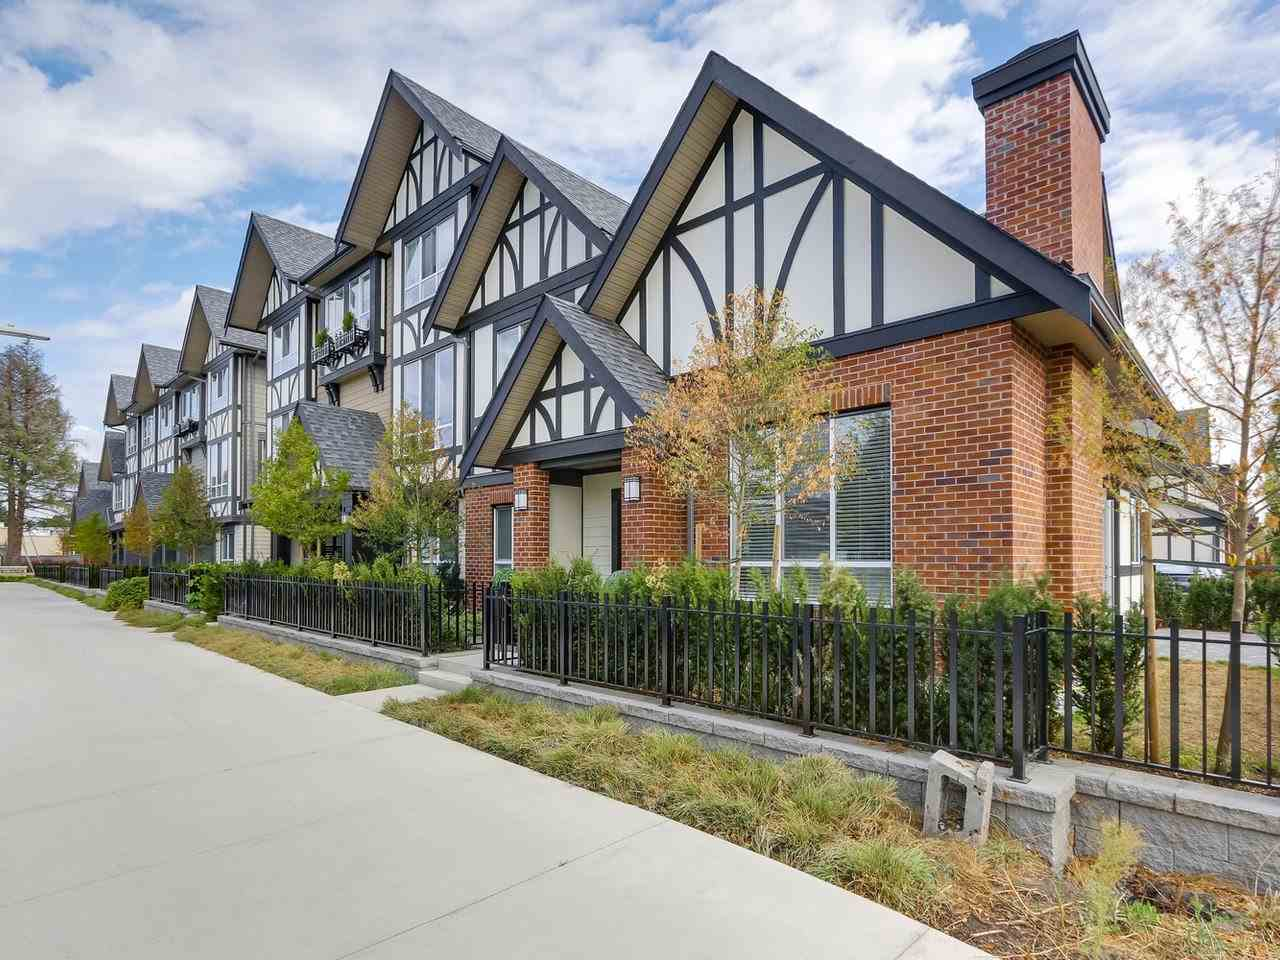 Kingsley Estates by Polygon! Rarely available 2 level luxury townhome in this collection. 4 bedrooms & 4 bathrooms. 3 up and one bedroom on main, double side by side garge, tons of upgrades, walking distance to the 1.5 acre London Park, Steveston London High School.